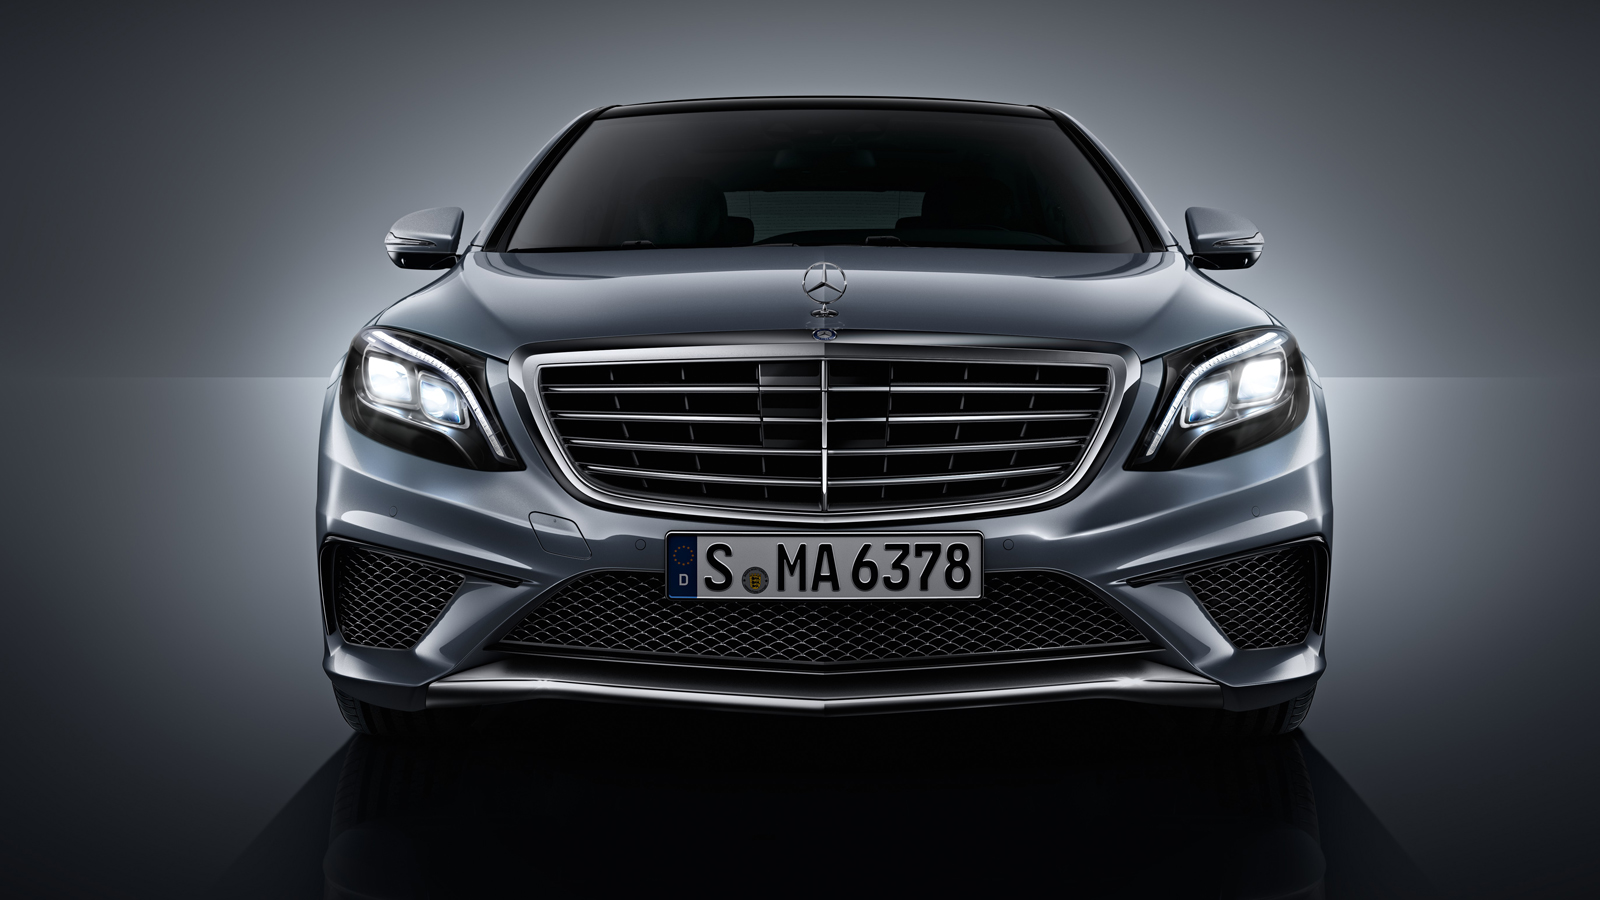 2014 mercedes s63 amg grille - Mercedes Benz S63 Amg 2014